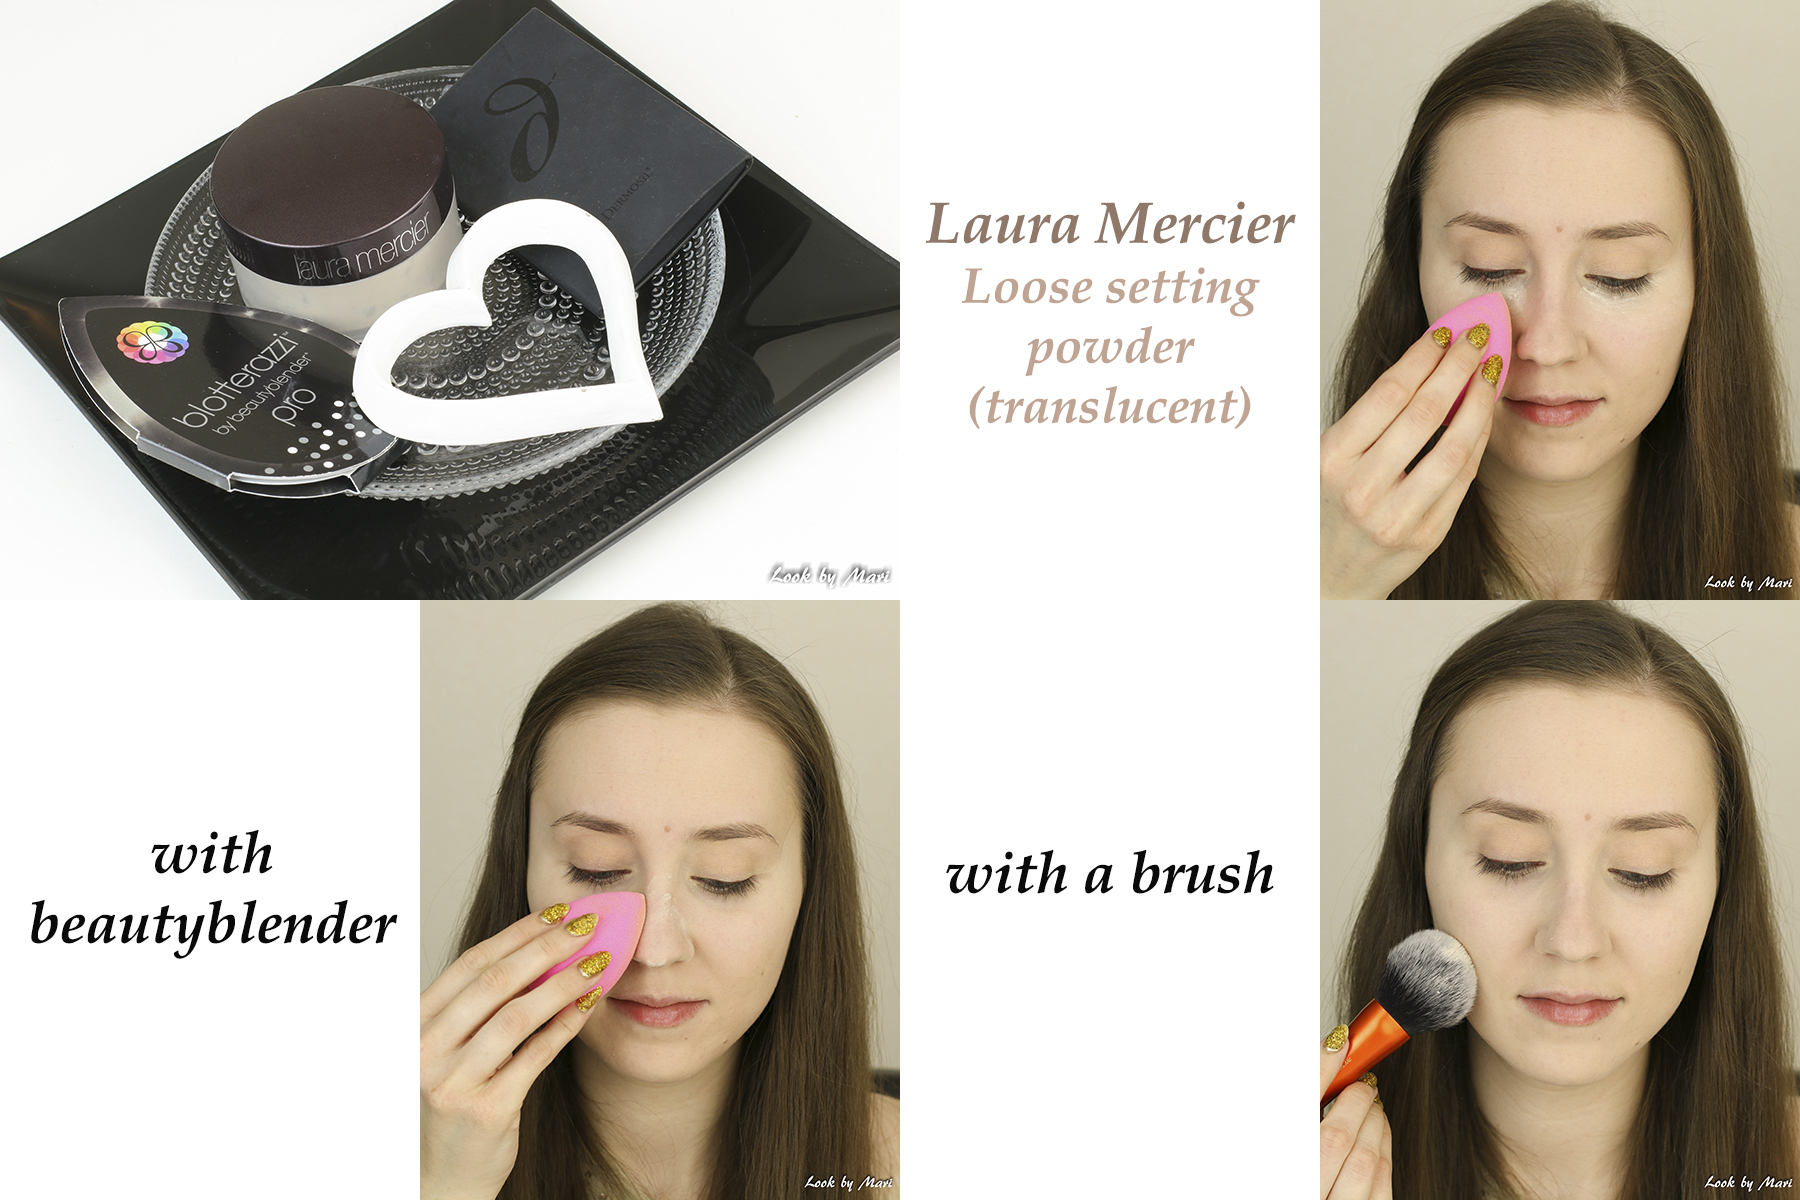 6 powder for long lasting makeup setting the makeup with powder for long lasting makeup